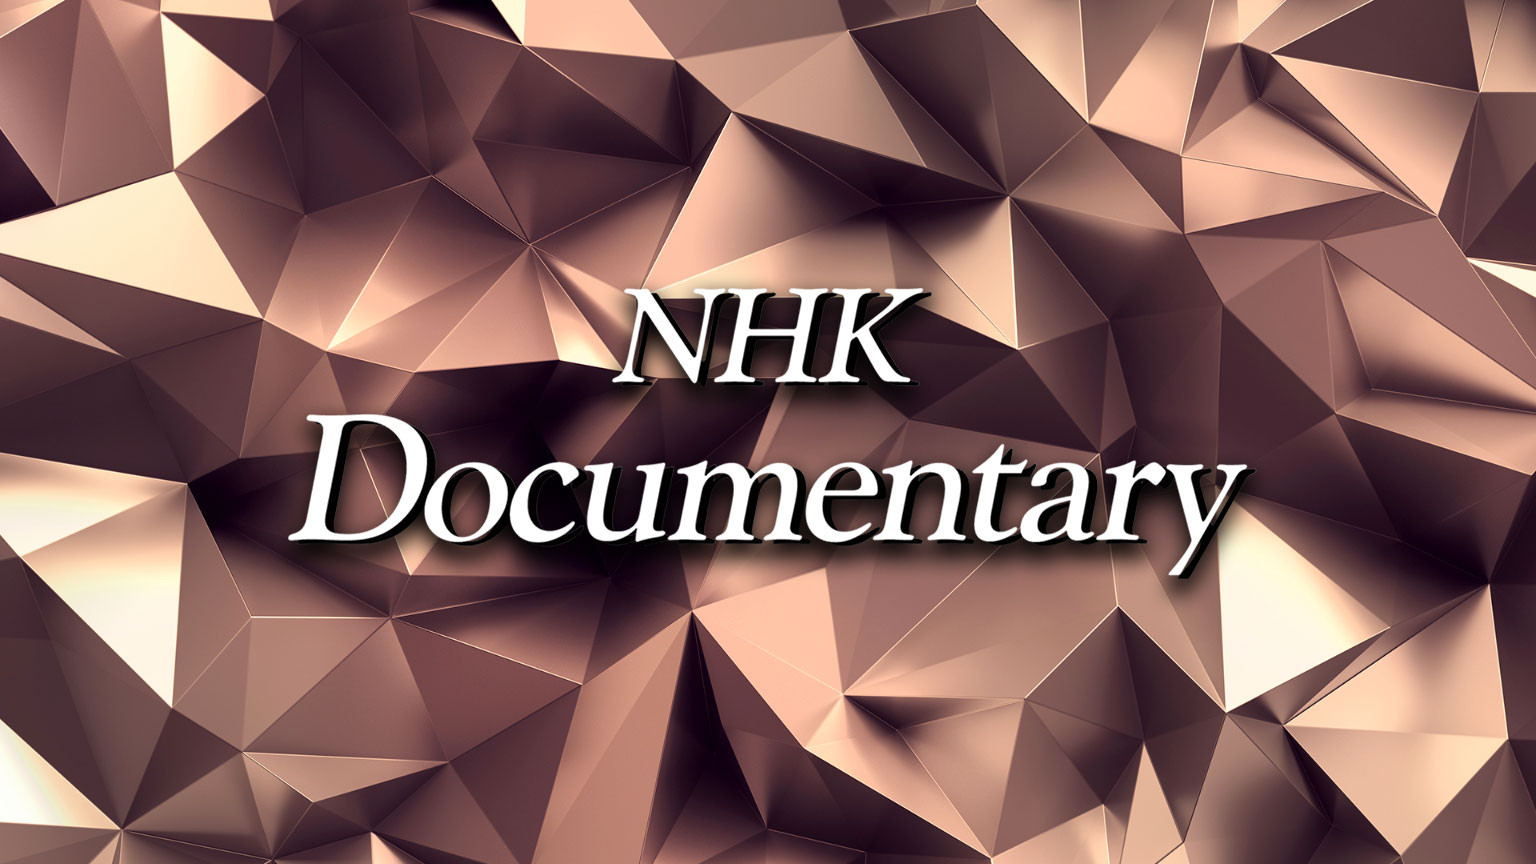 NHK特別節目